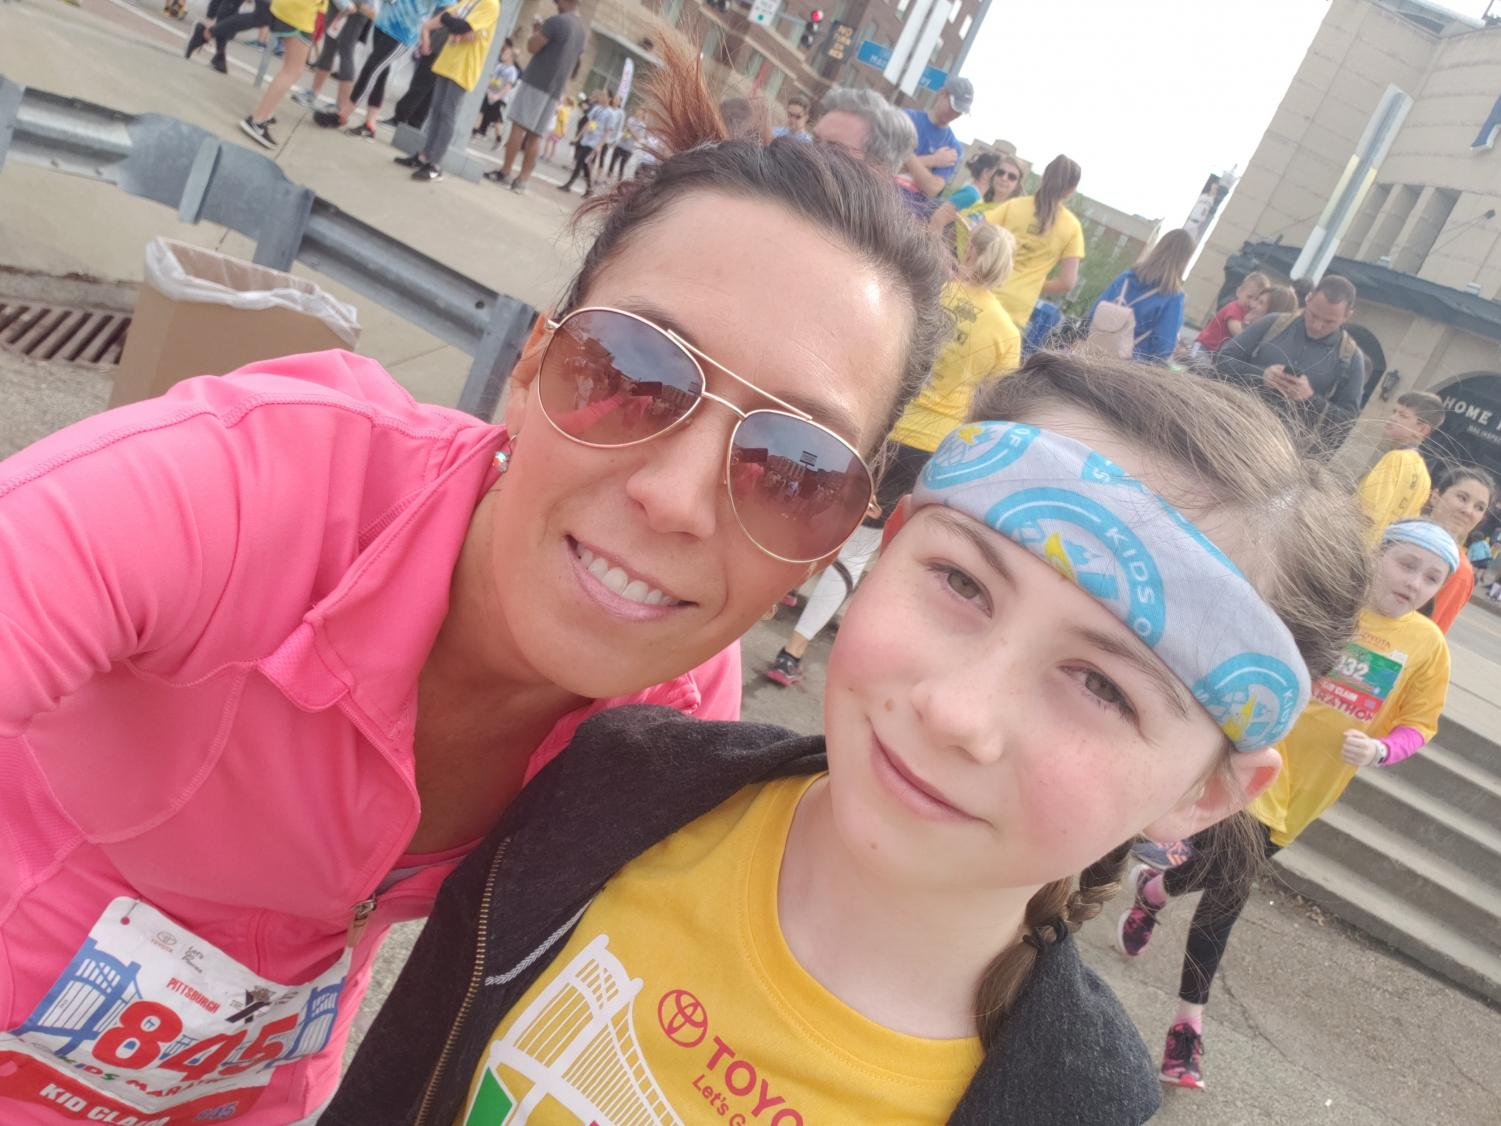 Dawson and her daughter take a selfie together at the Kids Marathon in Pittsburgh.